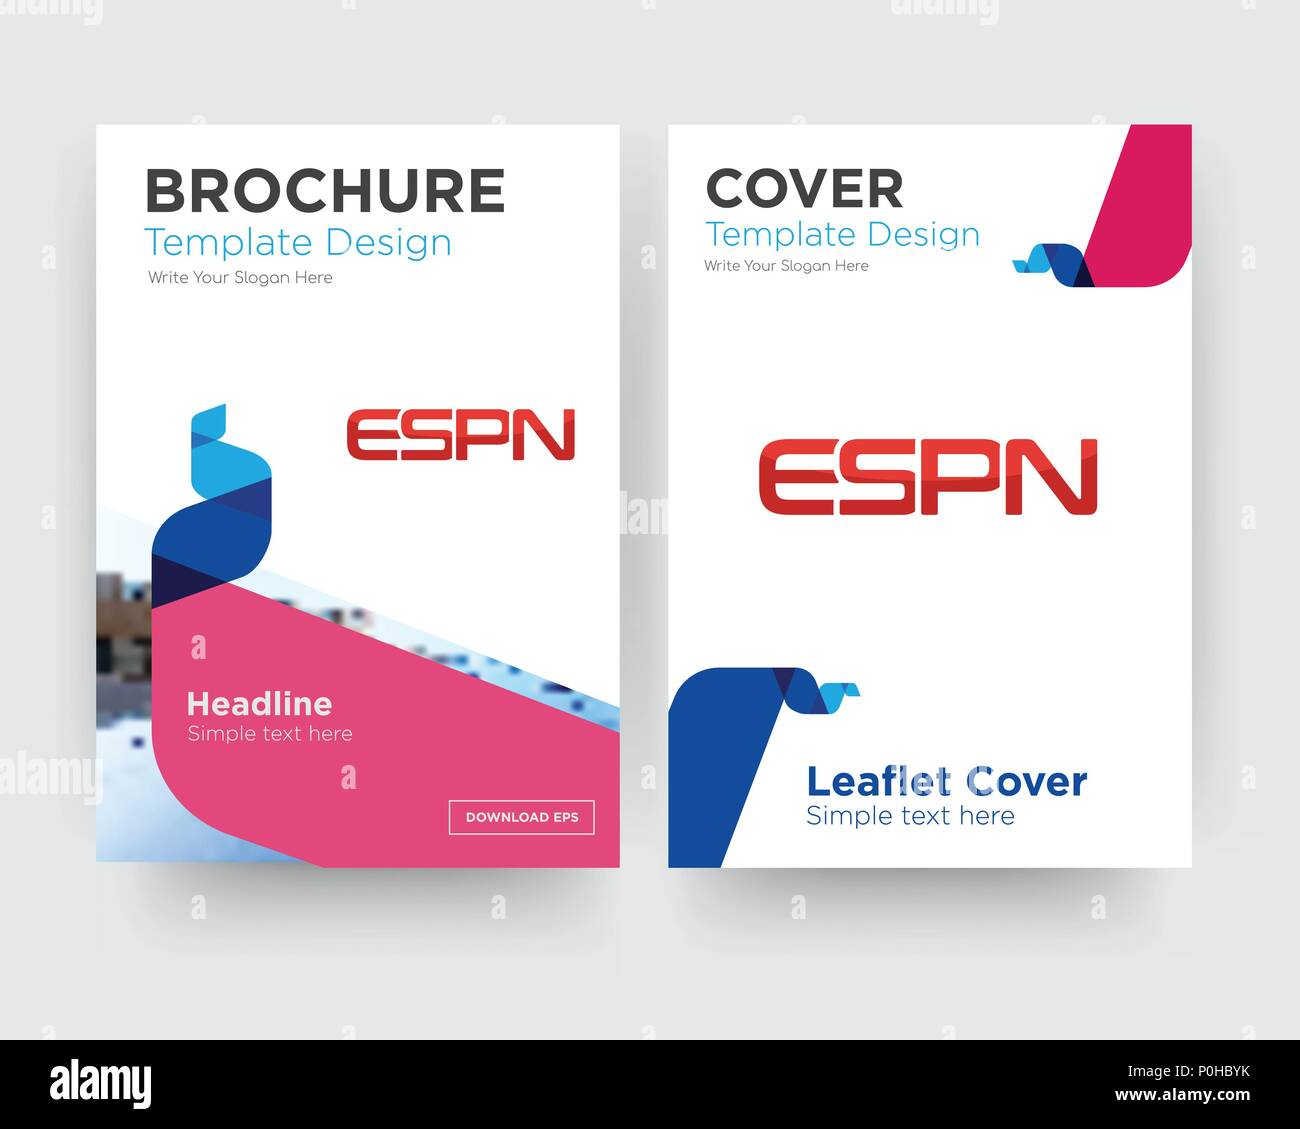 Espn Brochure Flyer Design Template With Abstract Photo Background